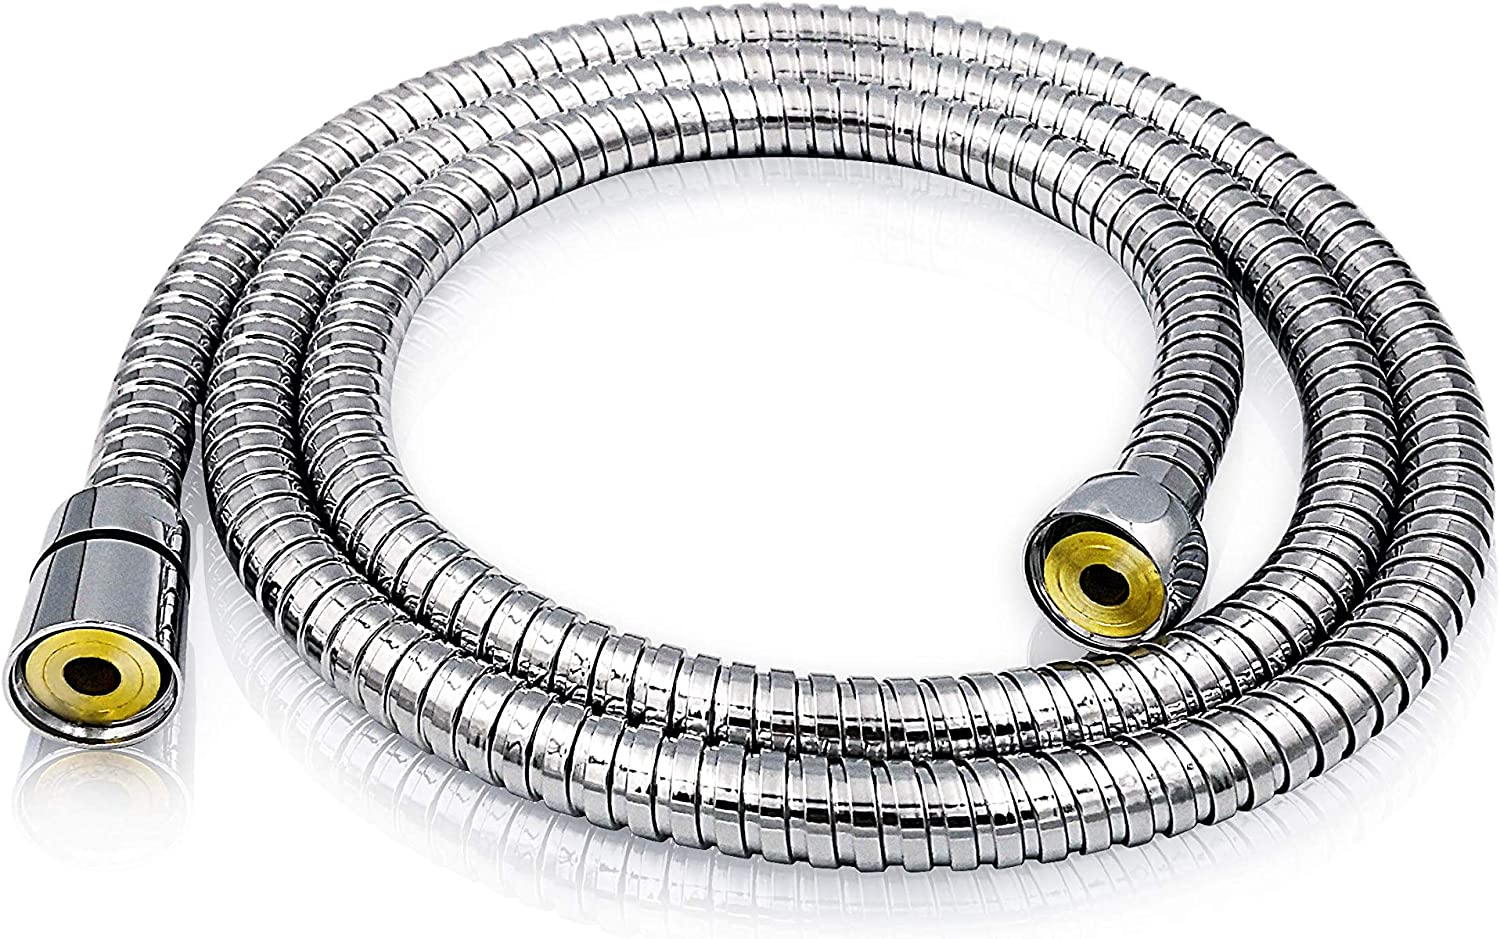 COMFORTHOME 79 INCH STAINLESS STEEL SHOWER HOSE REPLACEMENT POLISHED CHROME